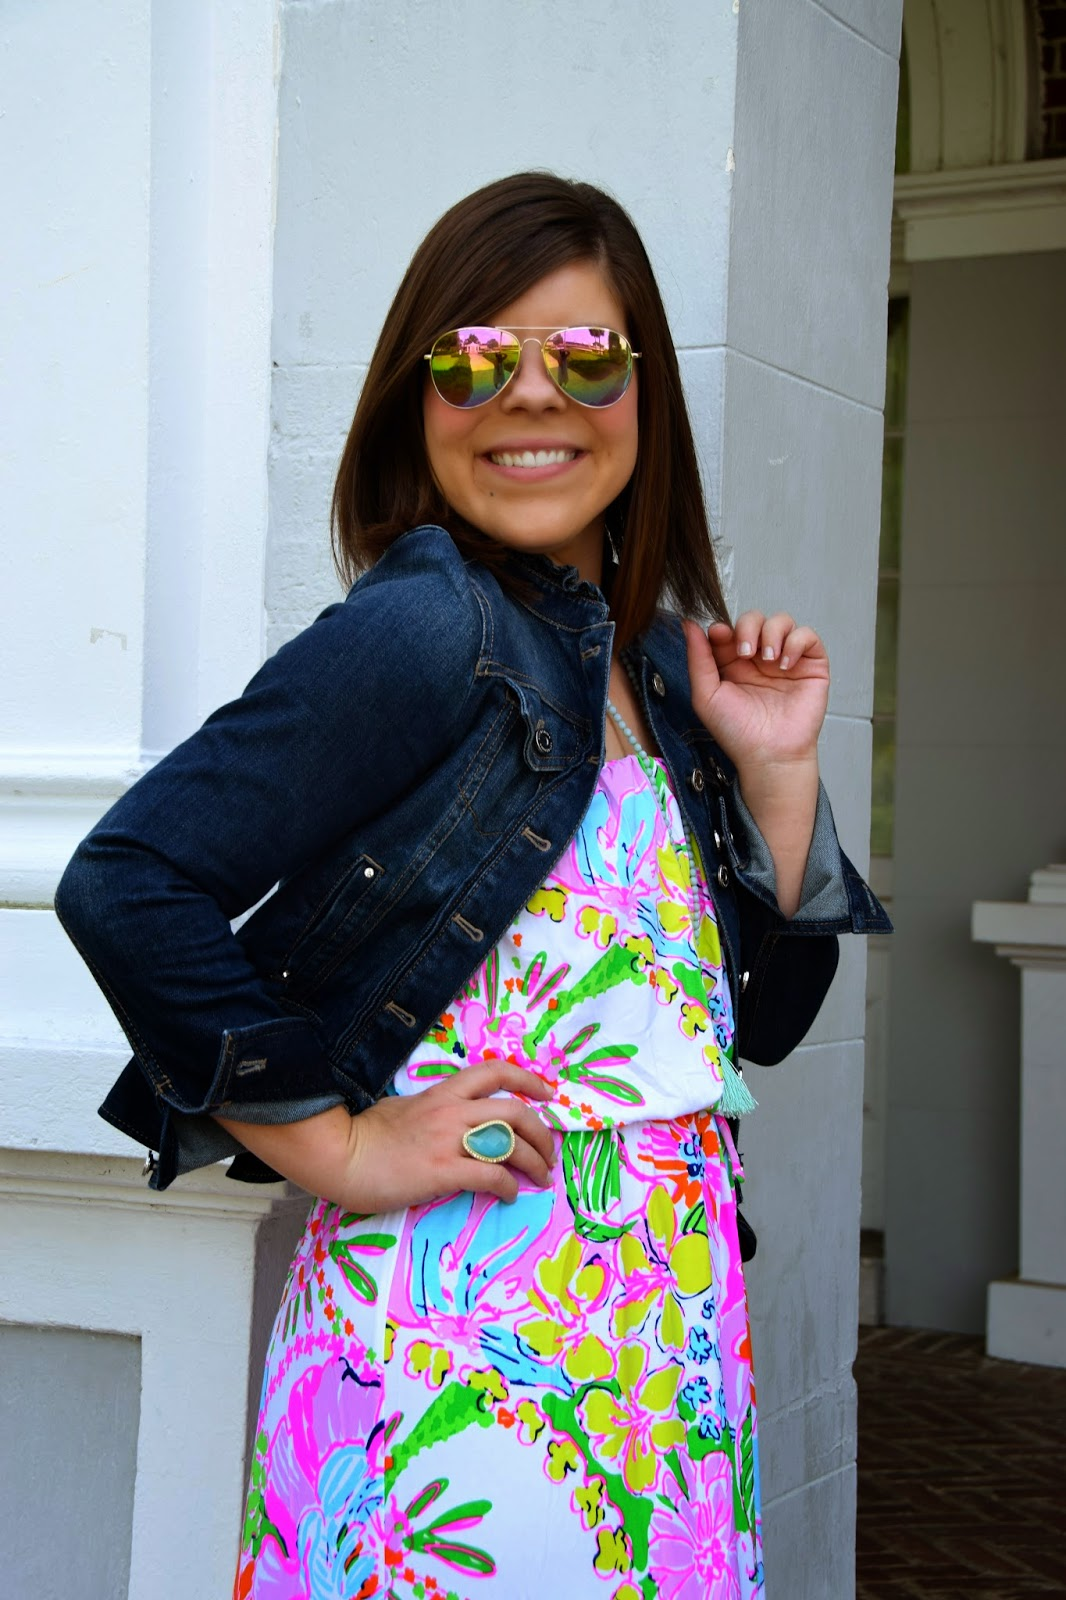 Cinco de Mayo & Lilly Pulitzer for Target!